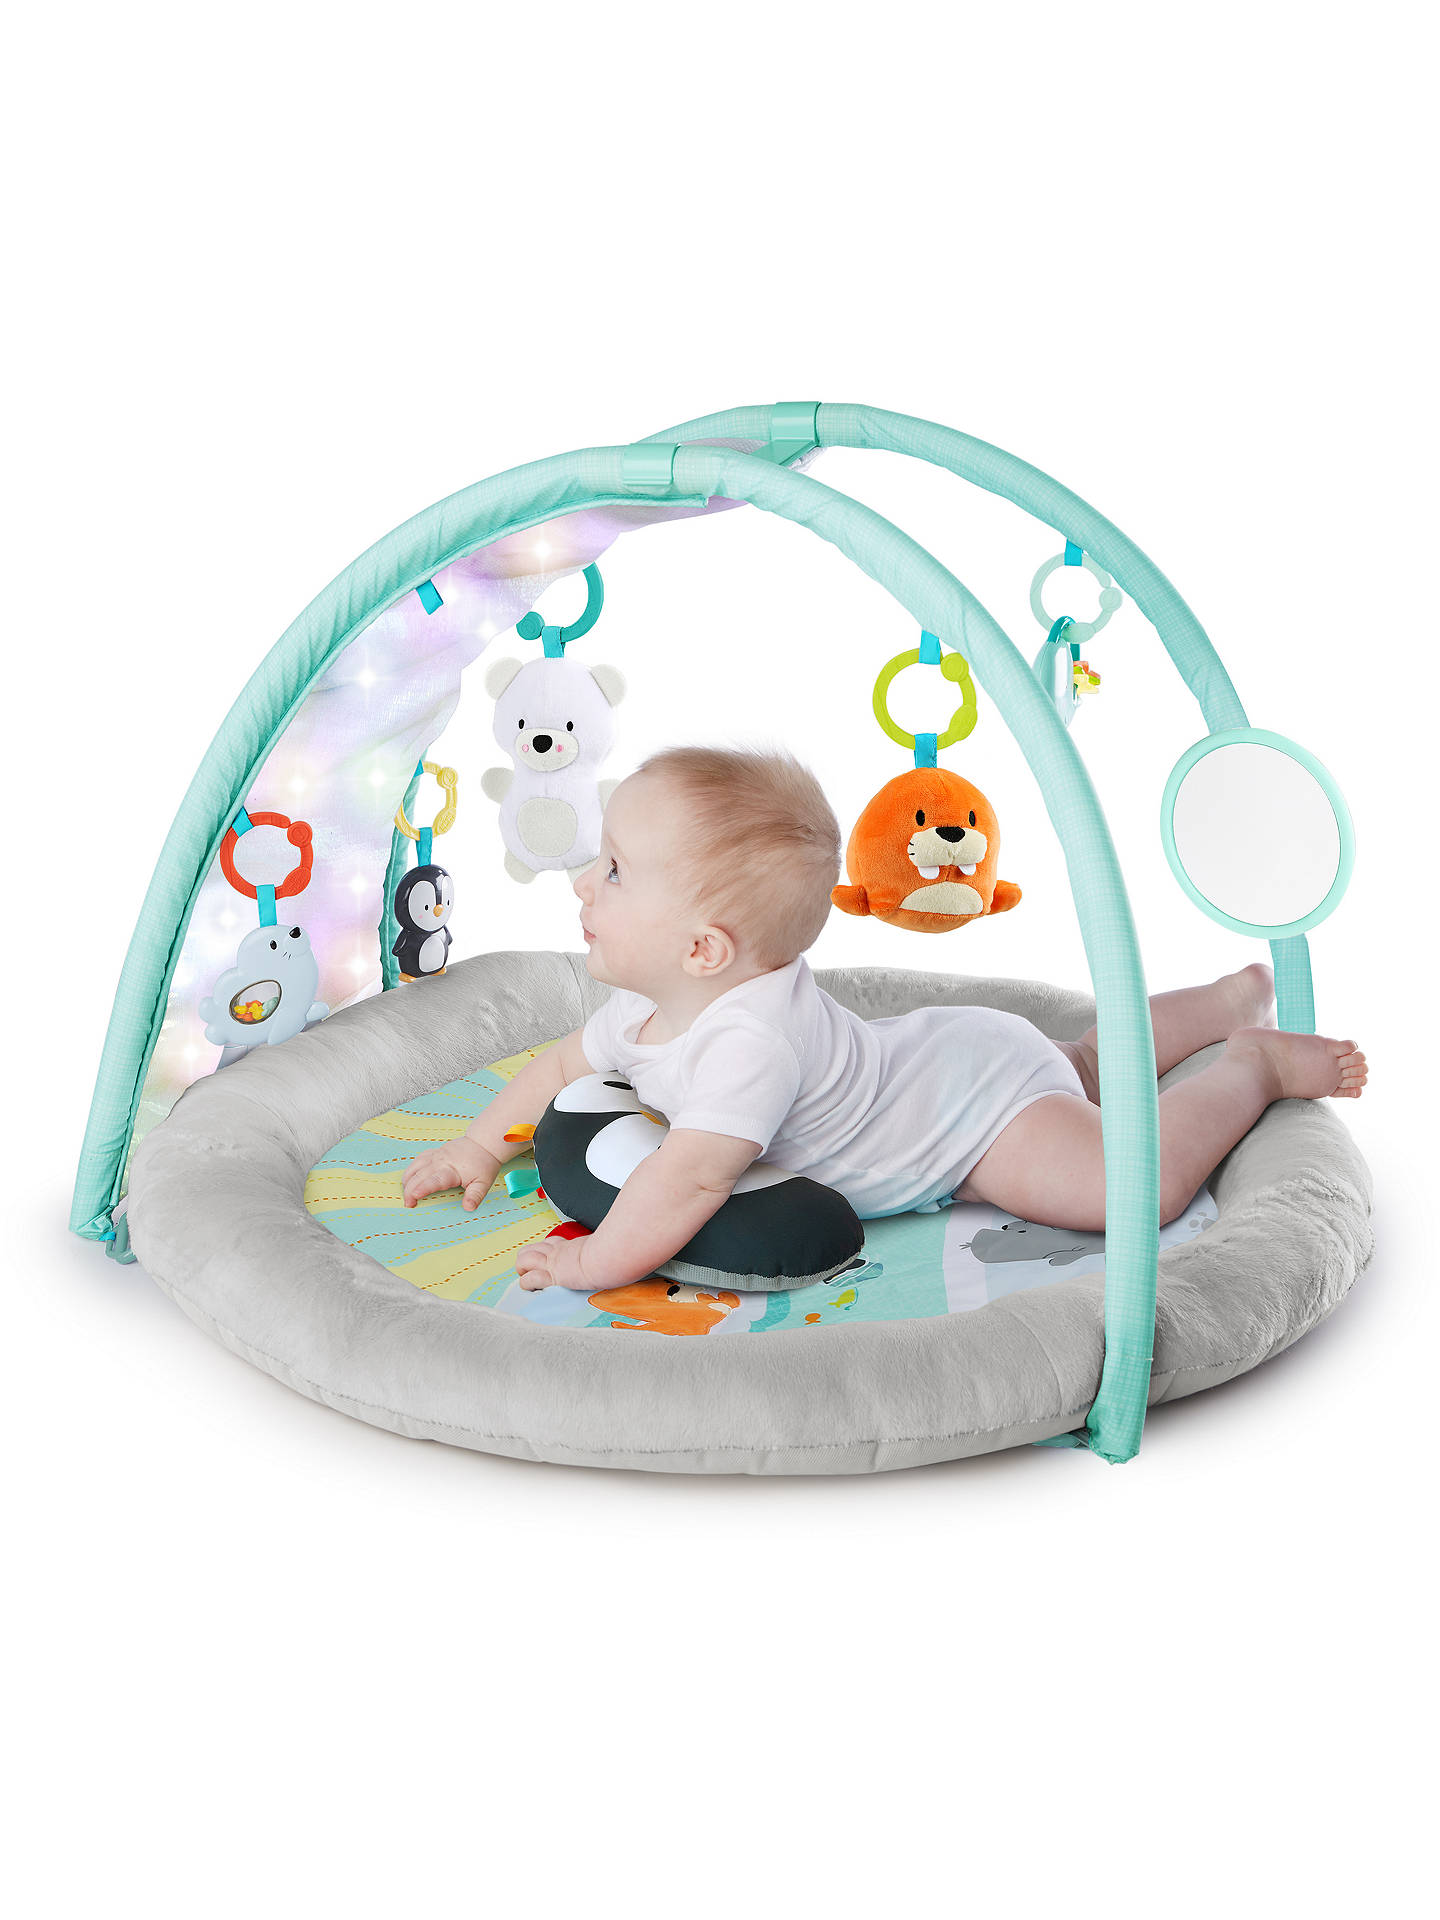 Buy Bright Starts Arctic Glow Baby Gym Online at johnlewis.com